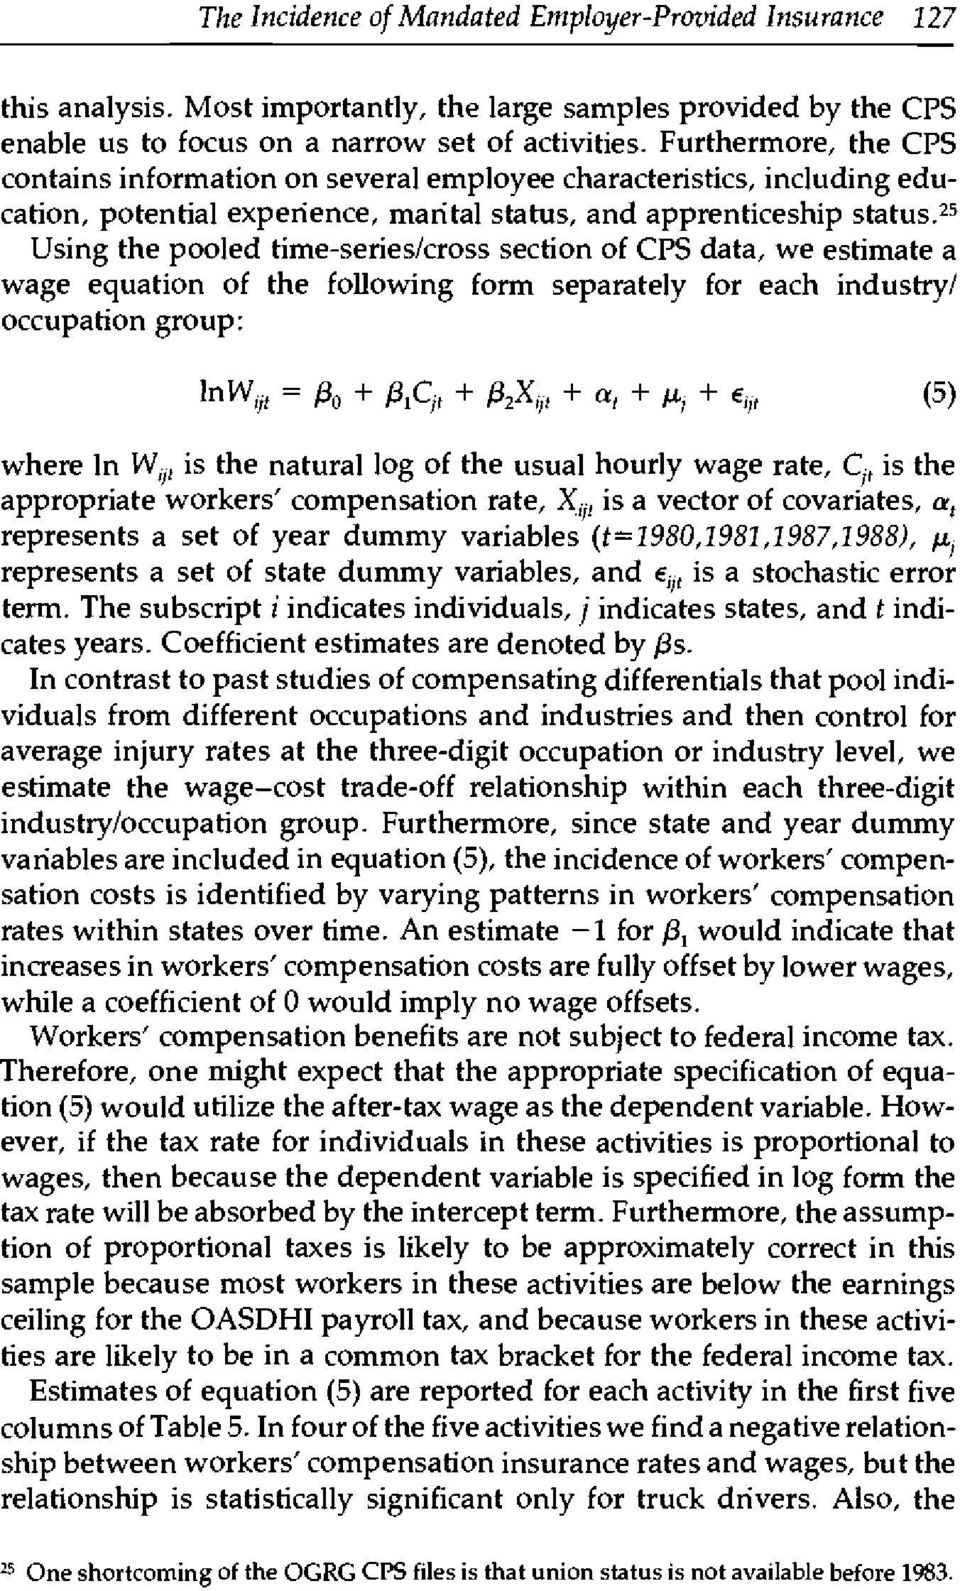 25 Using the pooled time-series/cross section of CPS data, we estimate a wage equation of the following form separately for each industry/ occupation group: lnw, yf = /3 0 + ftc,, + P 2 X ljt + a t +